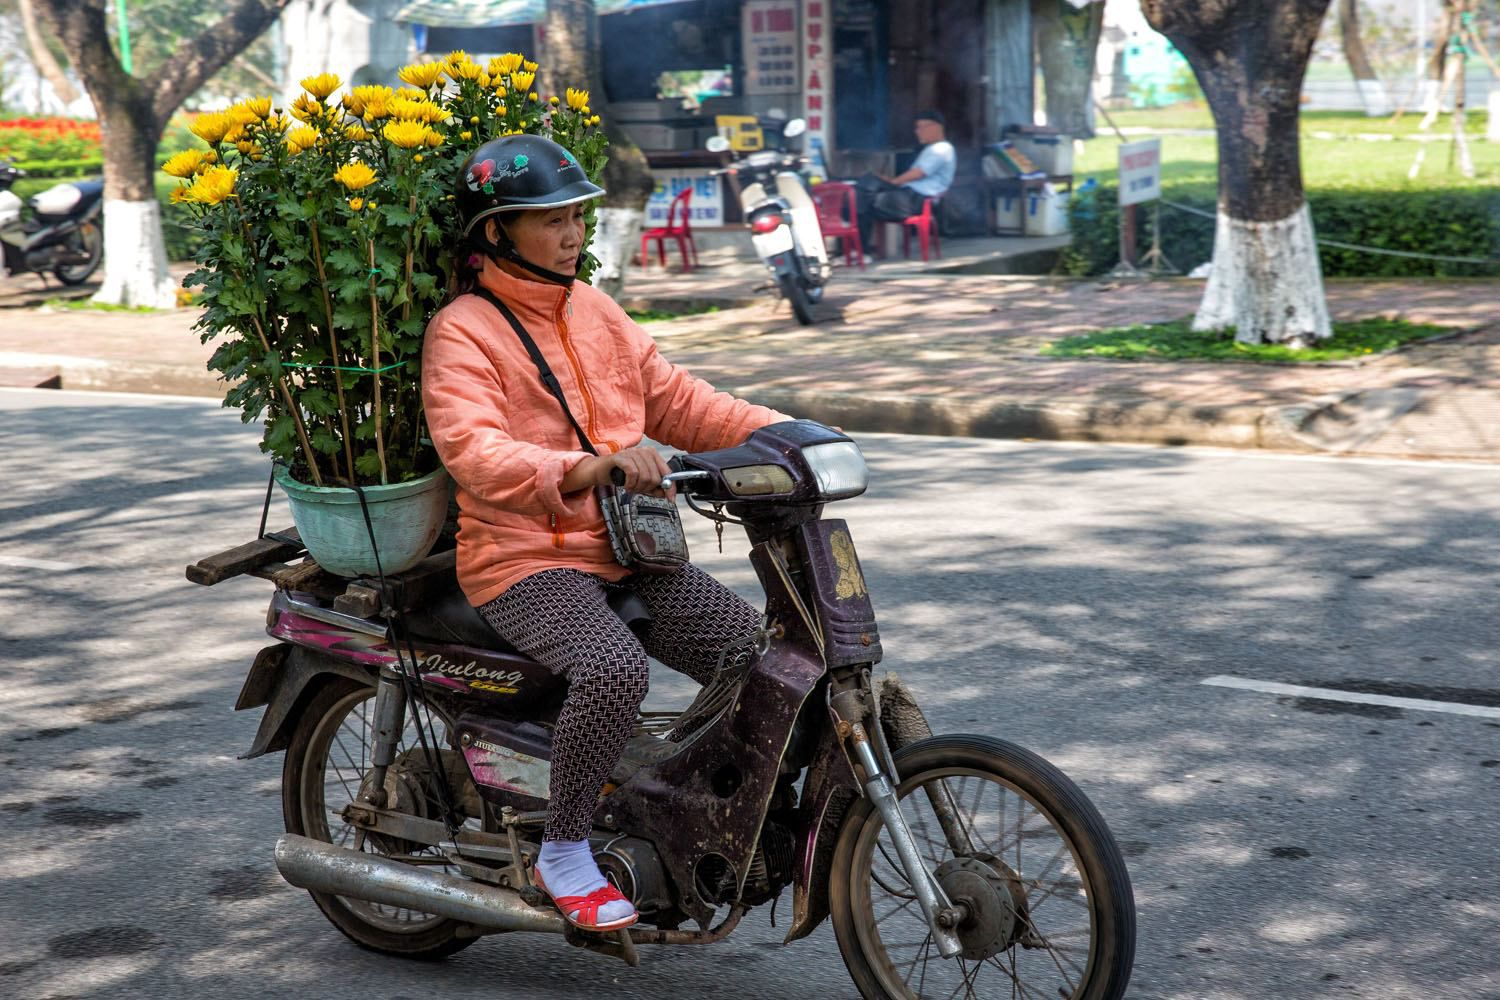 Motorbike with Chrysanthemums